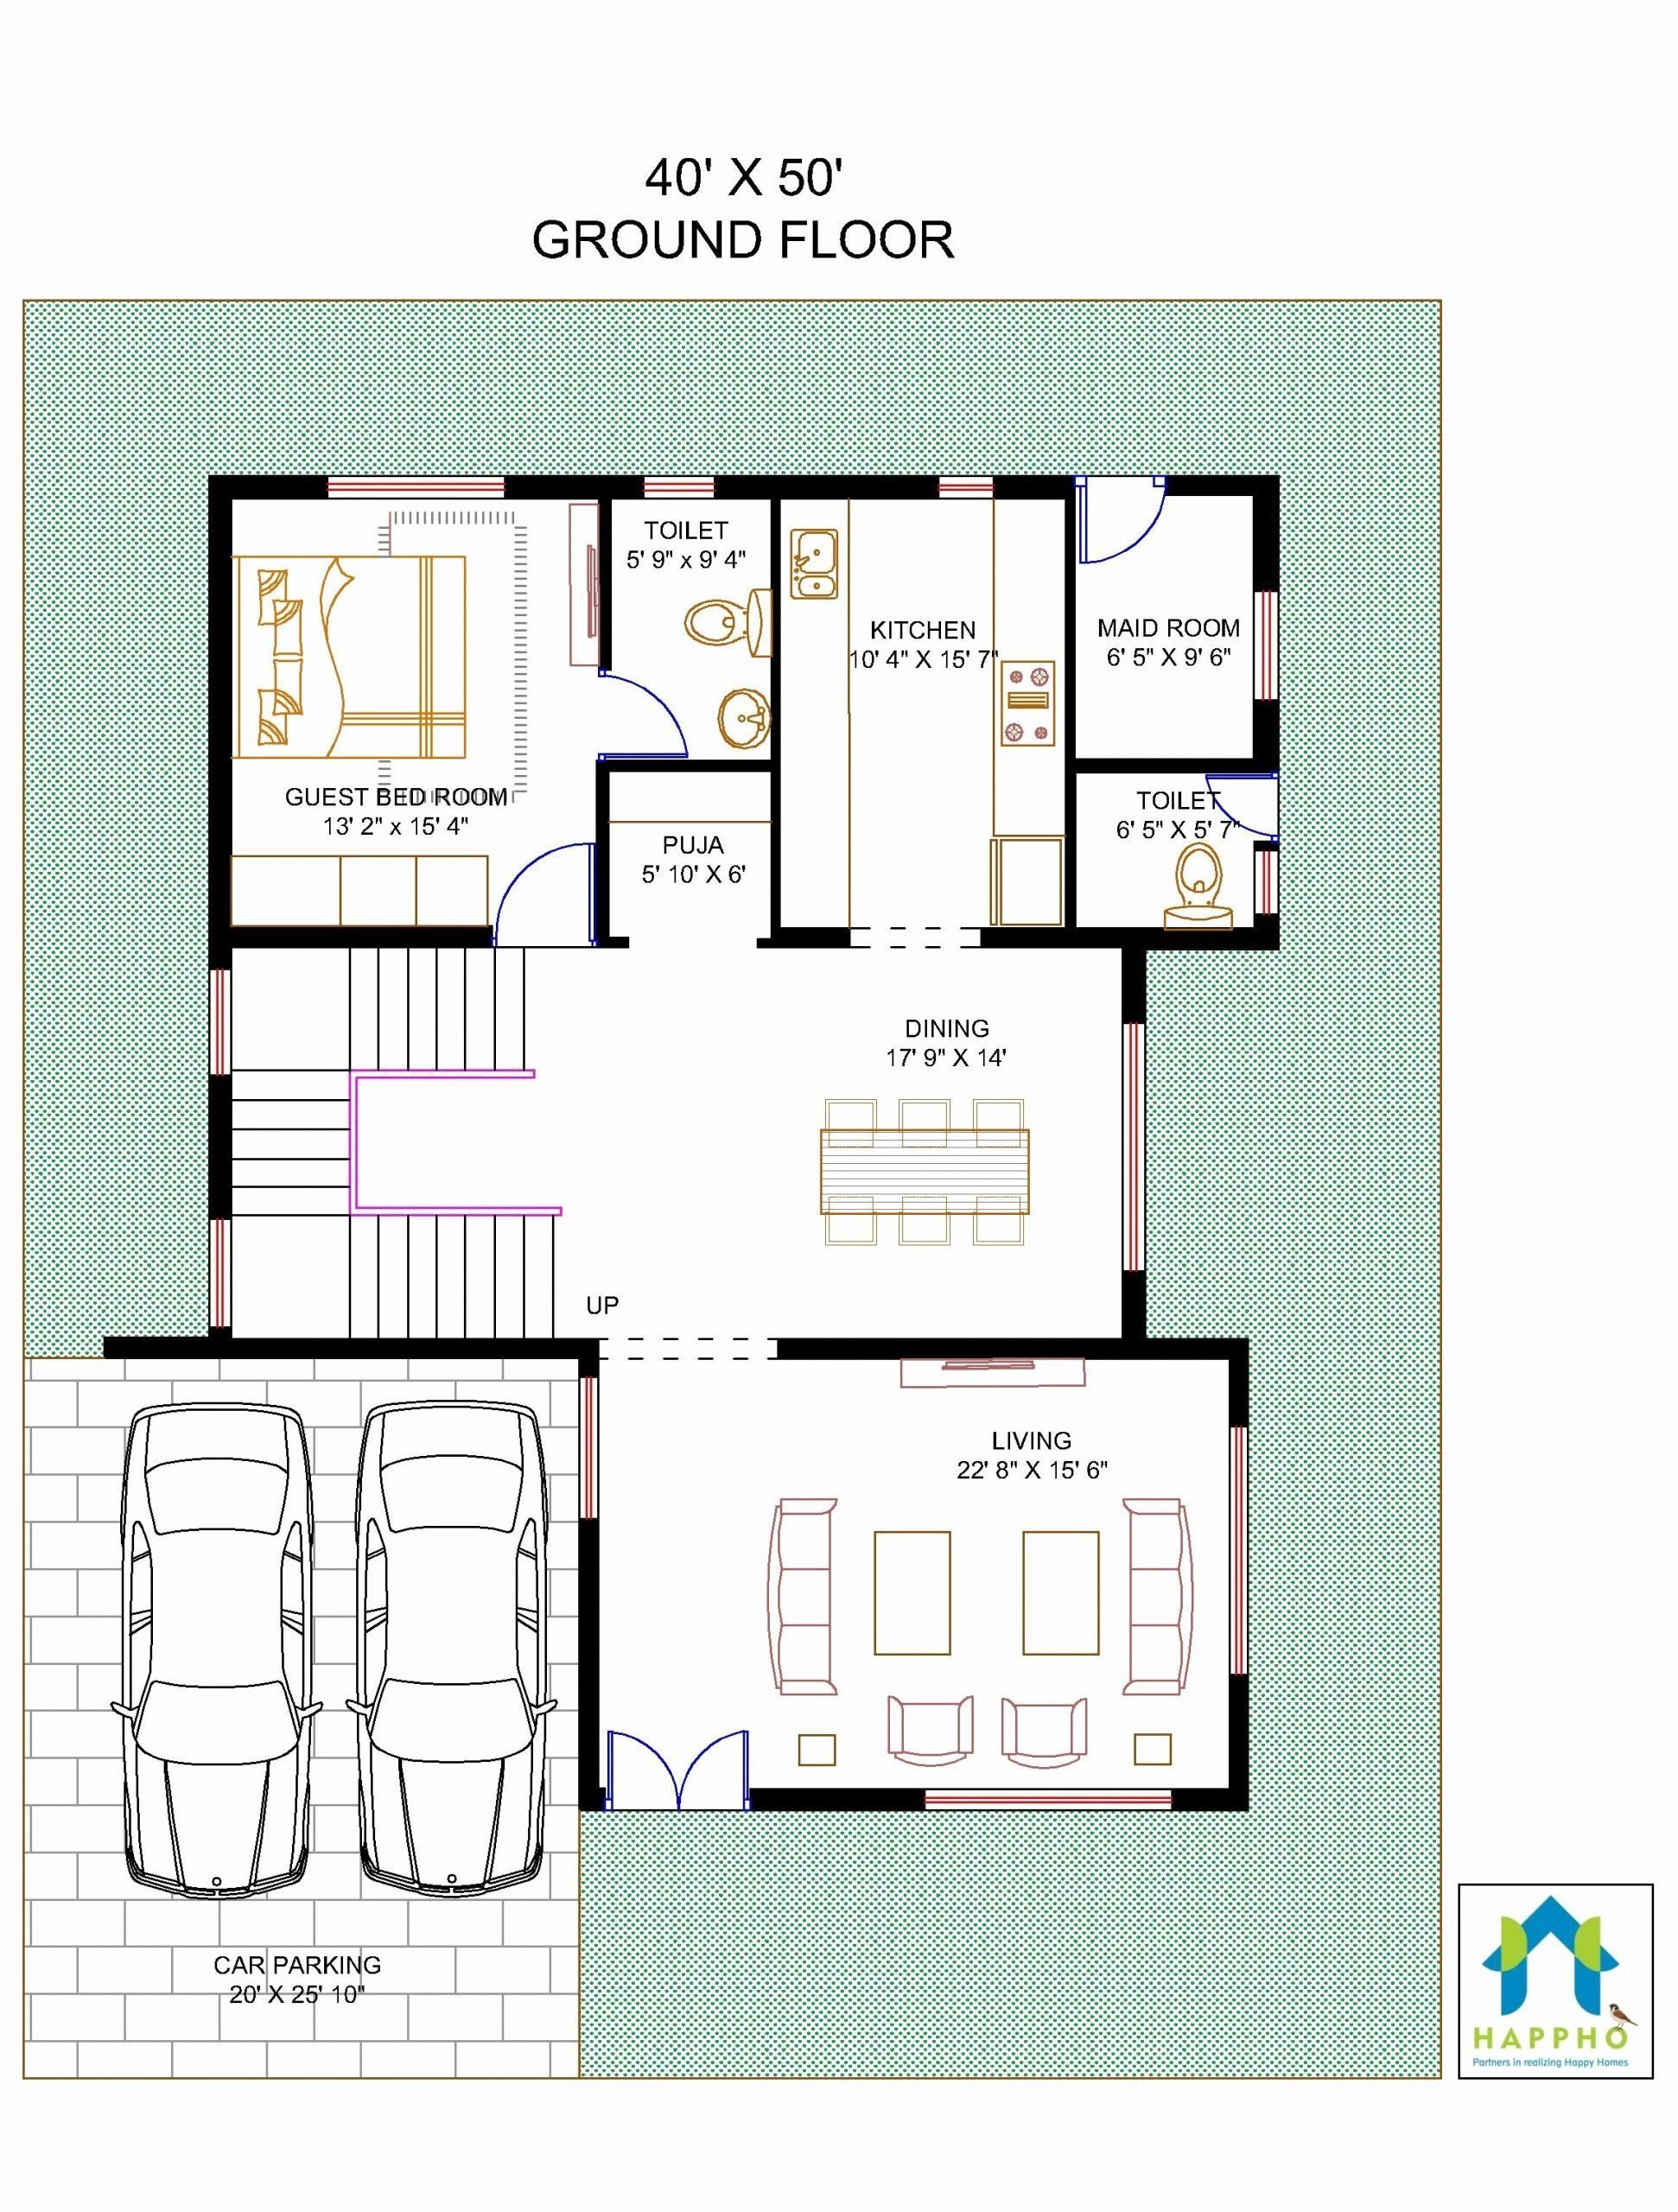 40 X 50 House Plans Best Of Floor Plan For 40 X 50 Feet Plot Kayleighdickinson Best Square House Plans Basement House Plans House Plans